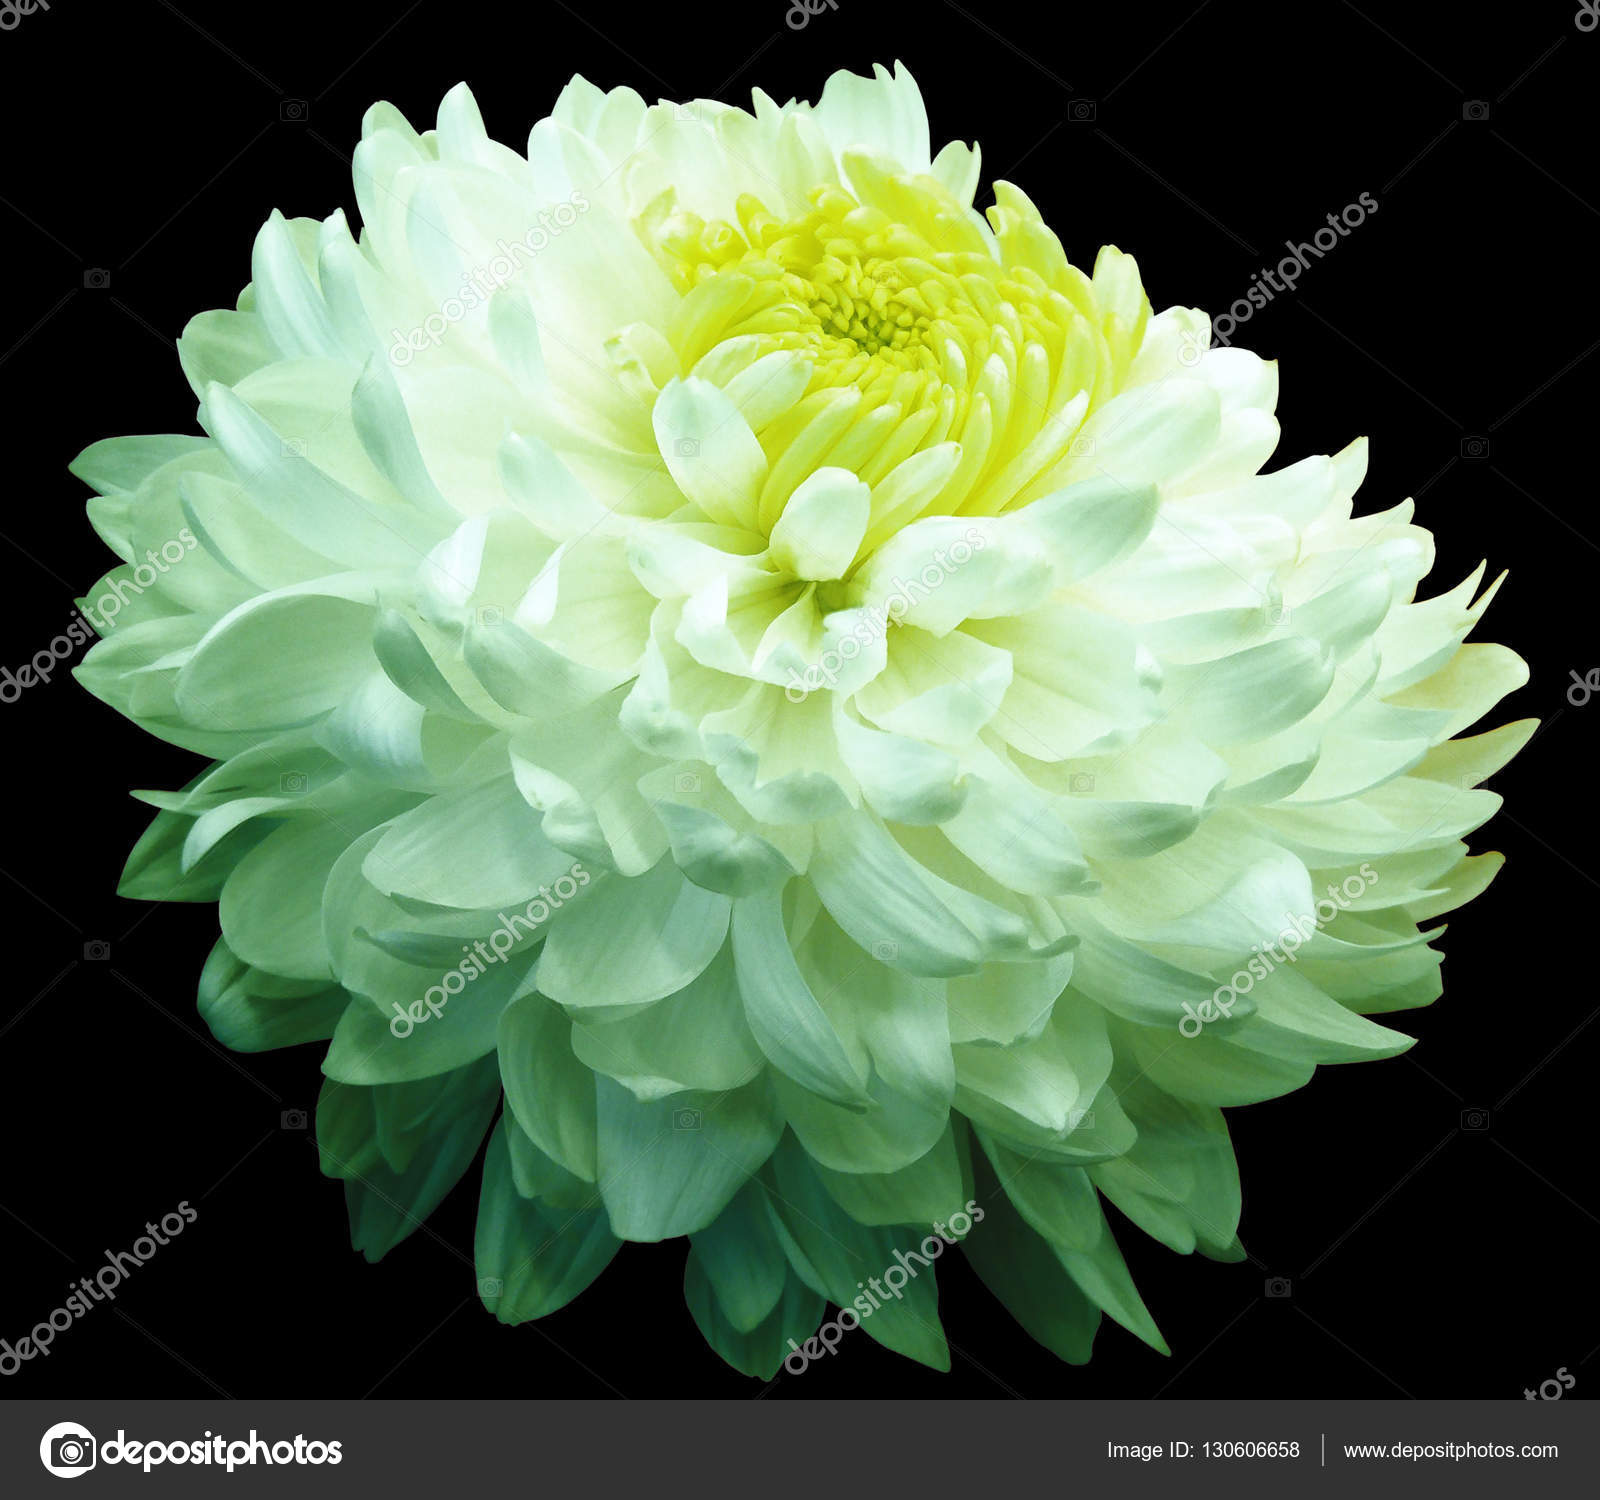 Green White Chrysanthemum Flower Yellow Center Black Background